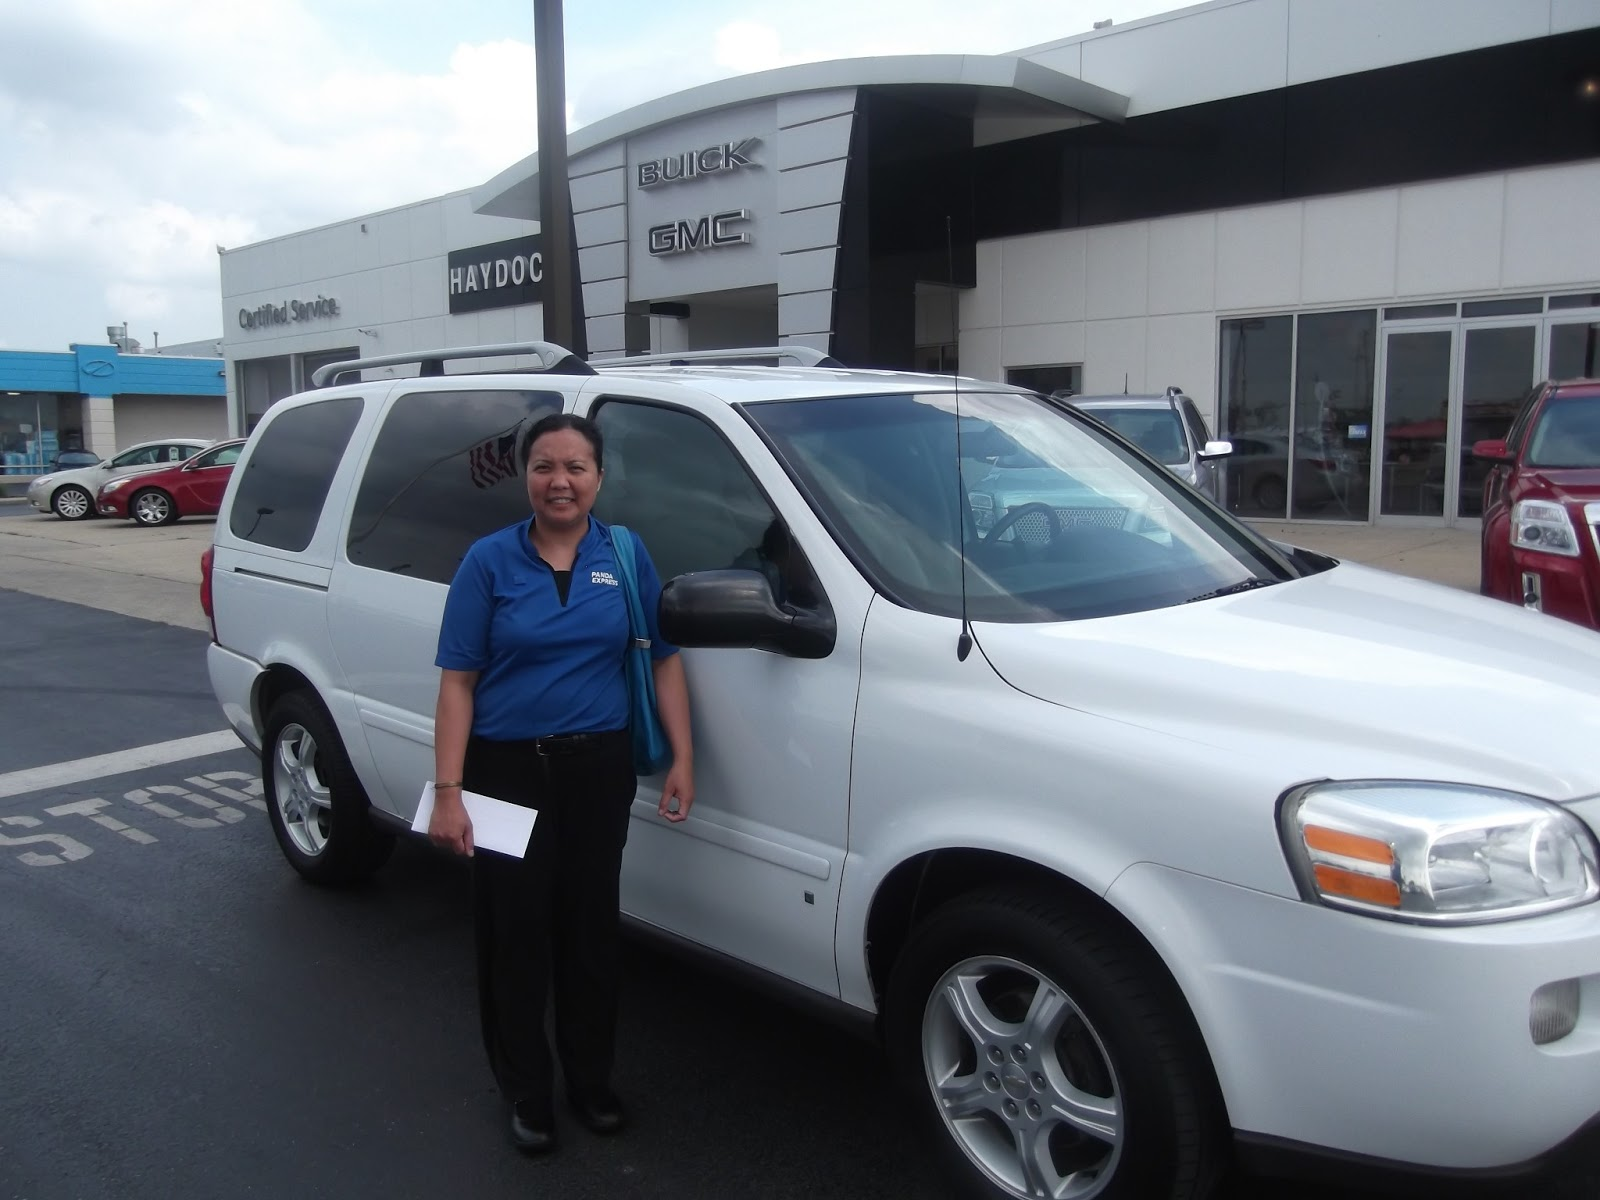 Haydocy Buick GMC  June 2013 Haydocy Automotive delivers another 2006 Chevy Uplander to Myla H of Columbus  Ohio  When asked about her experience working with Haydocy Sales  professional